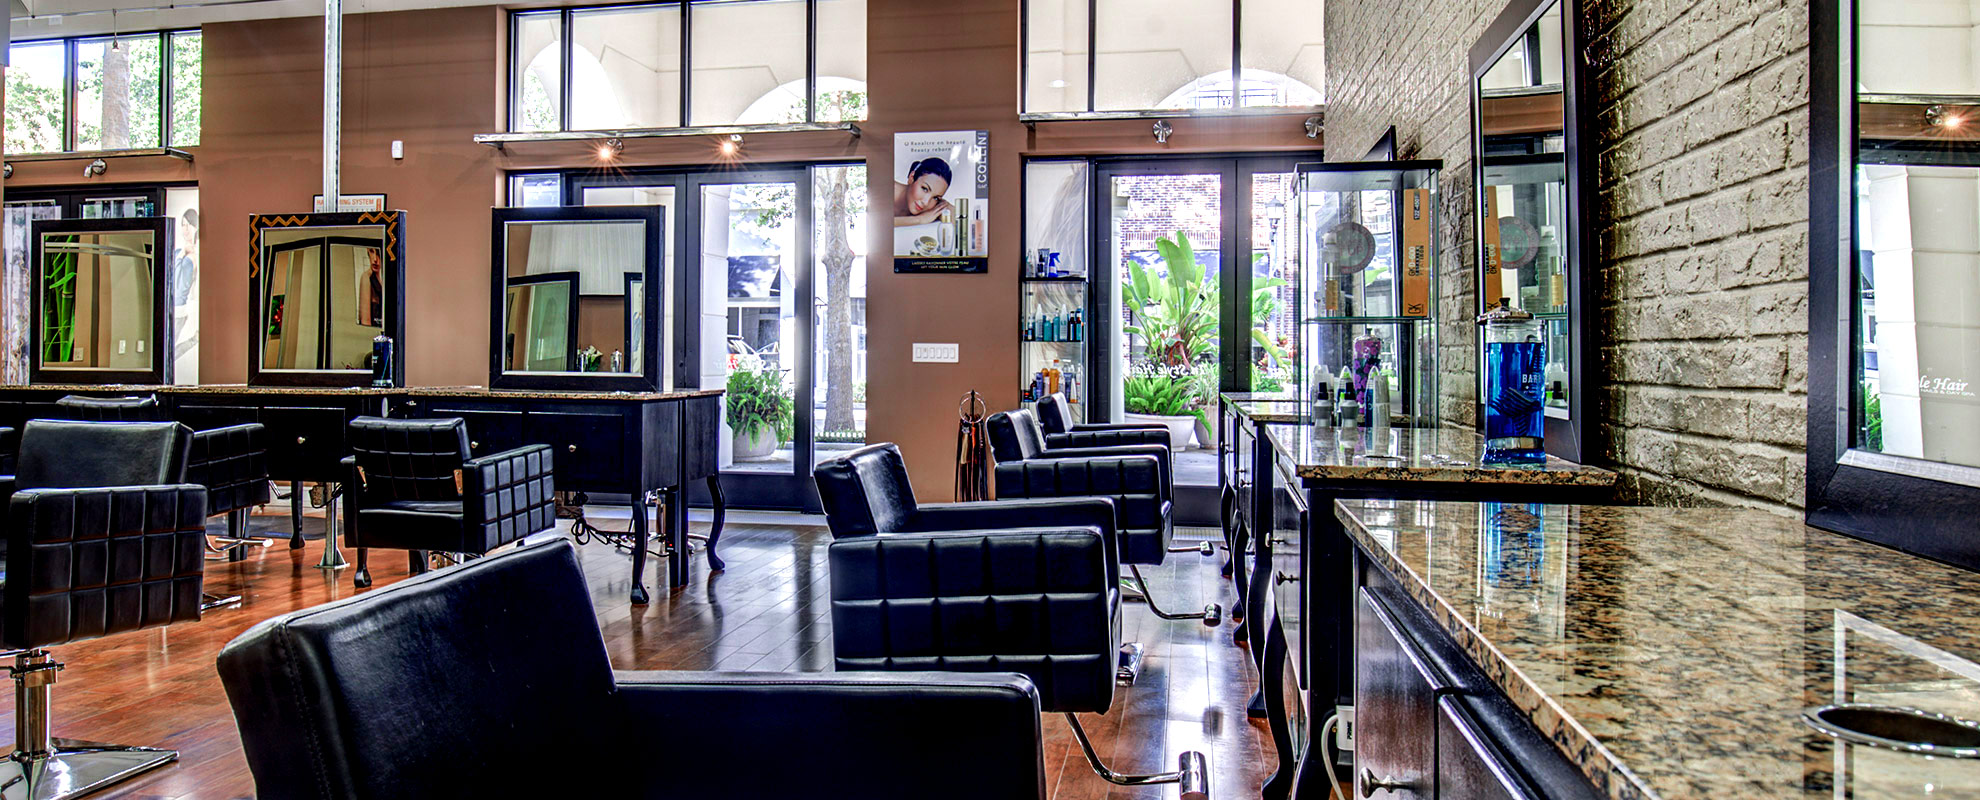 In Style Hair Salon Interior